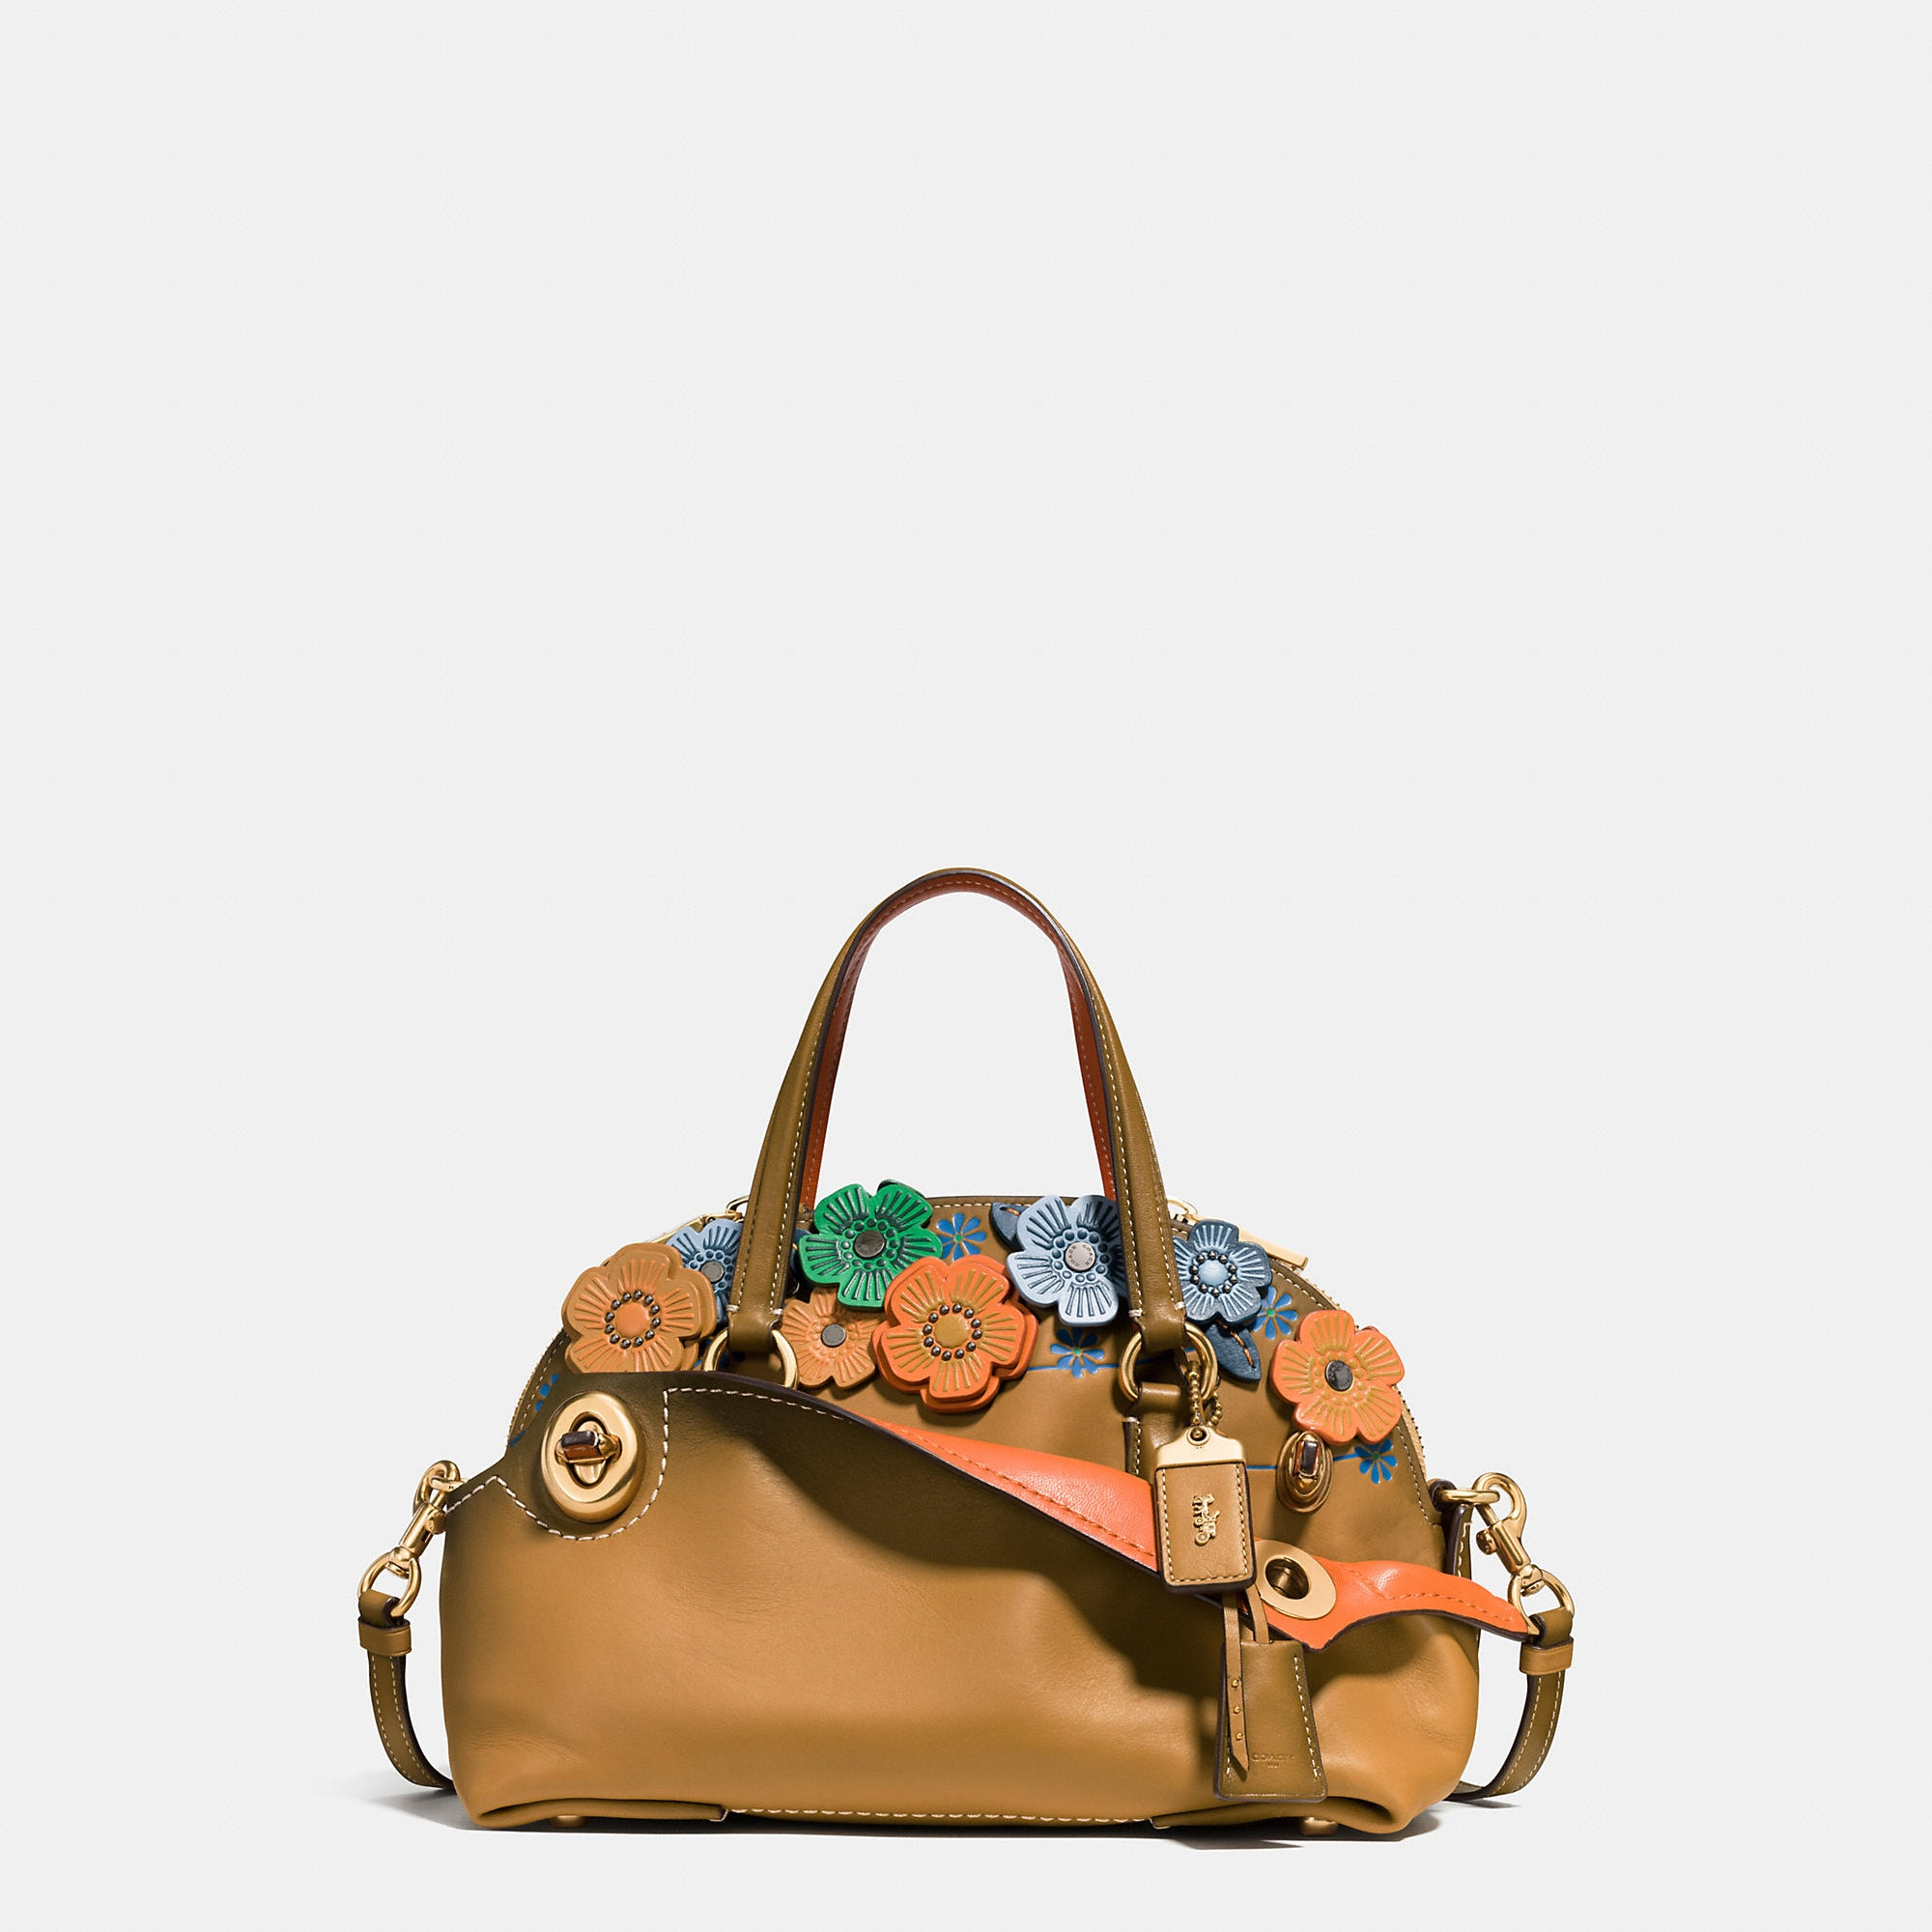 Coach 1941 Tea Rose Applique Outlaw Satchel 36 In Grain Leather